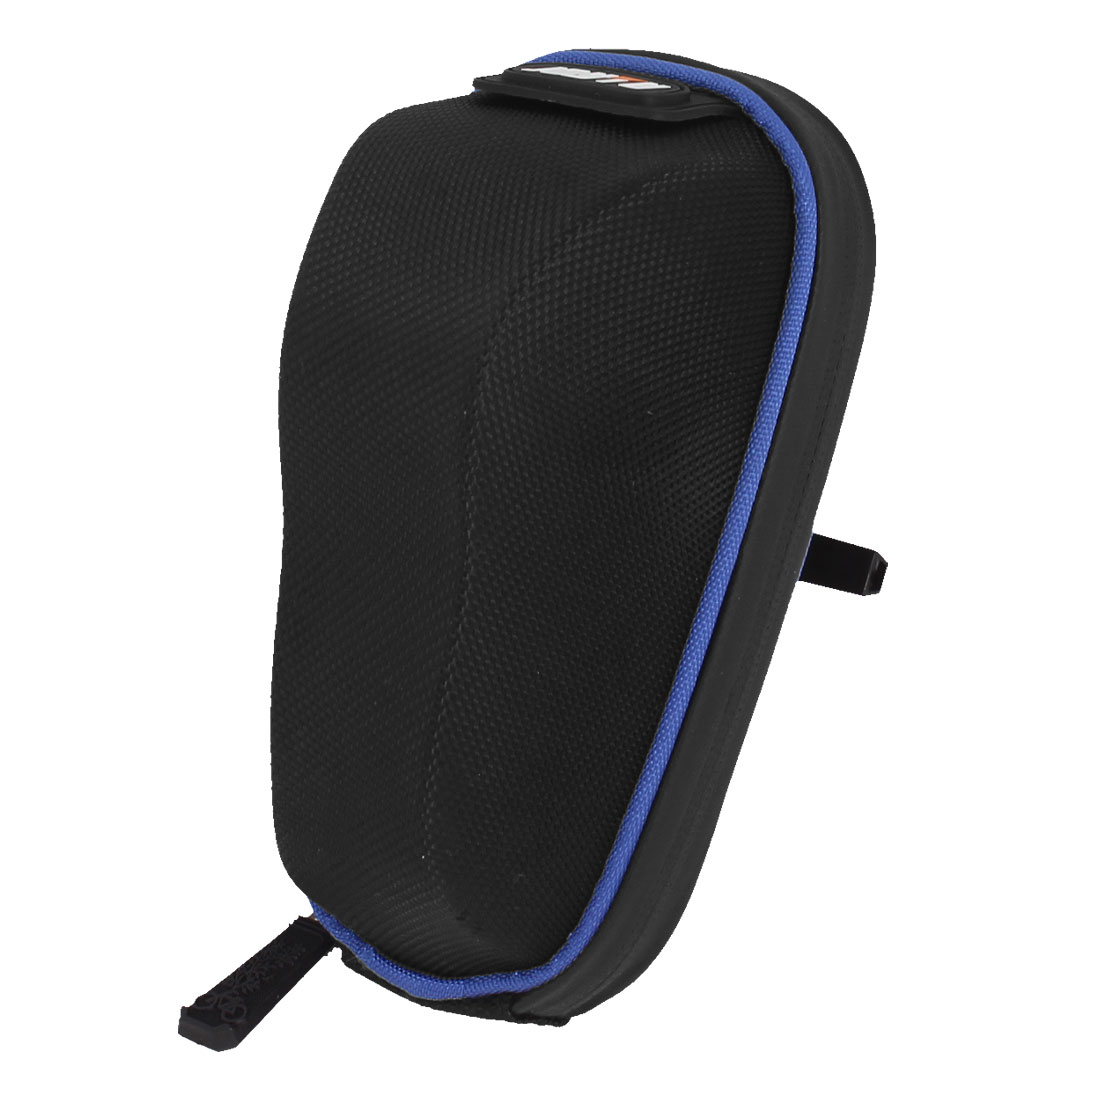 Road Bike Bicycle Black Saddle Pannier Seat Rear Zipper Bag Pouch Holder